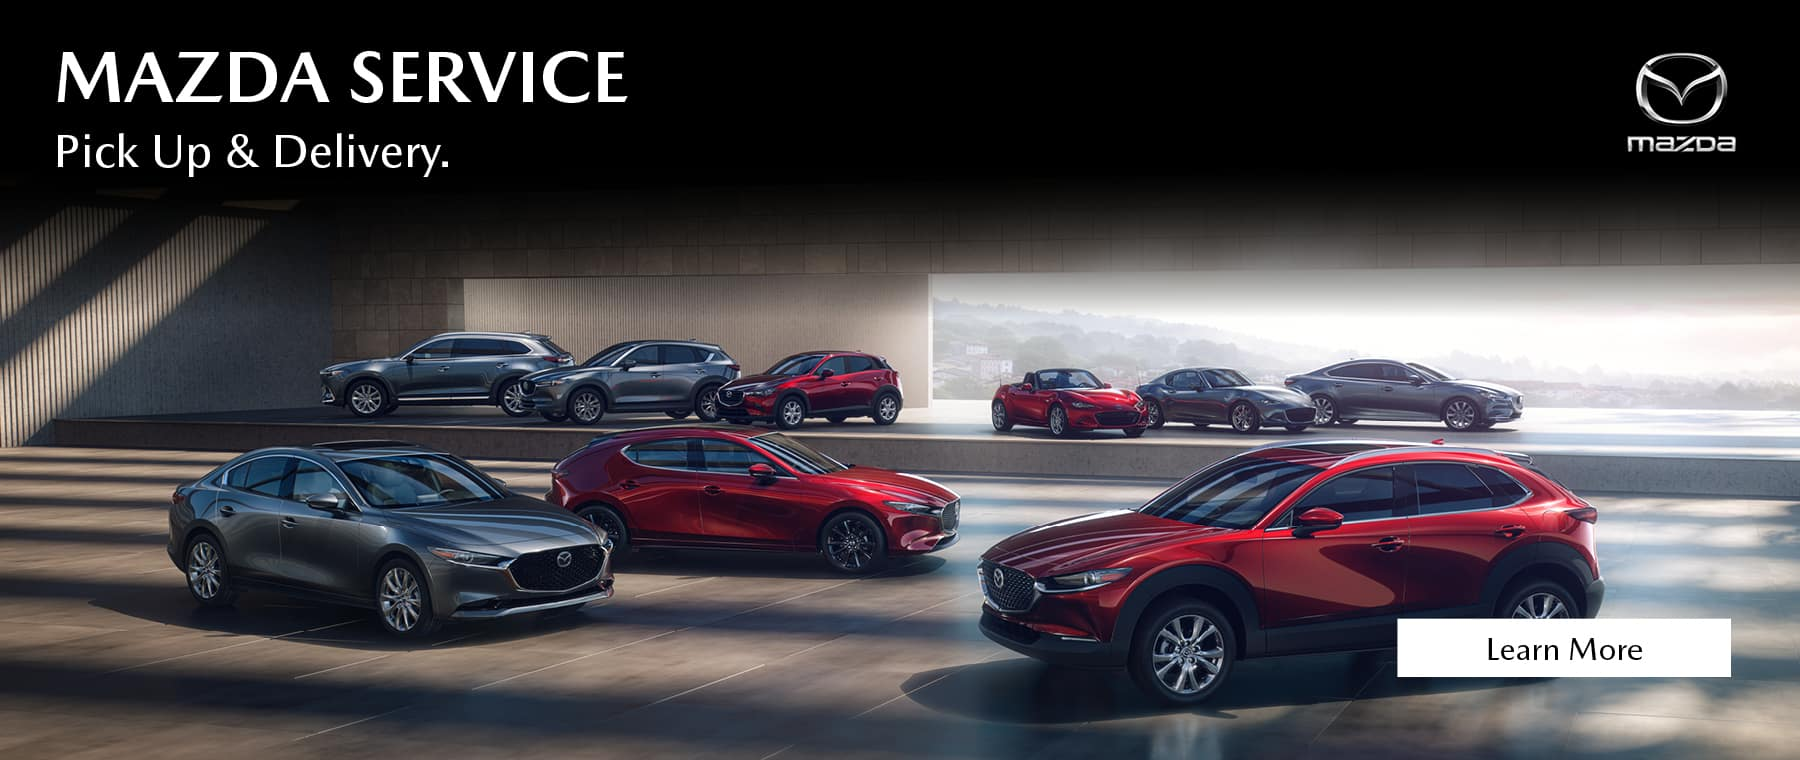 Mazda service. Delivery and Pick up.